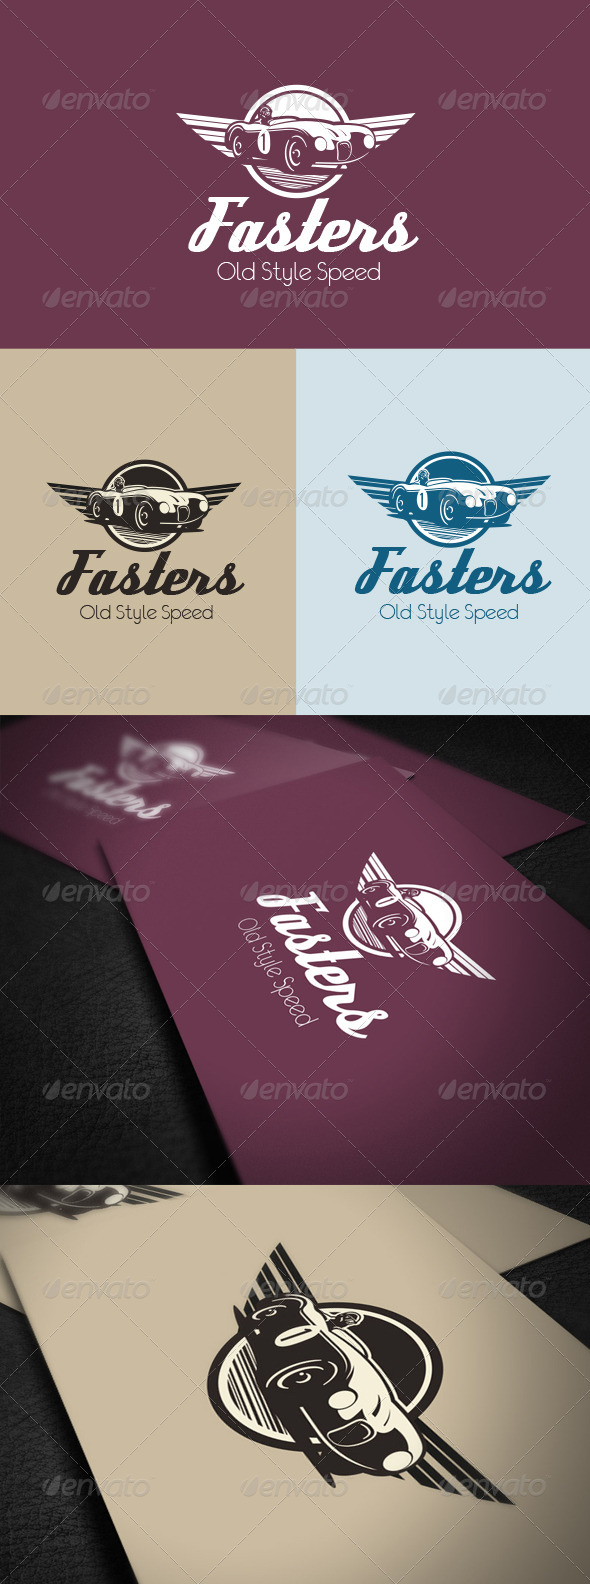 Fasters Old Style  - Vector Abstract